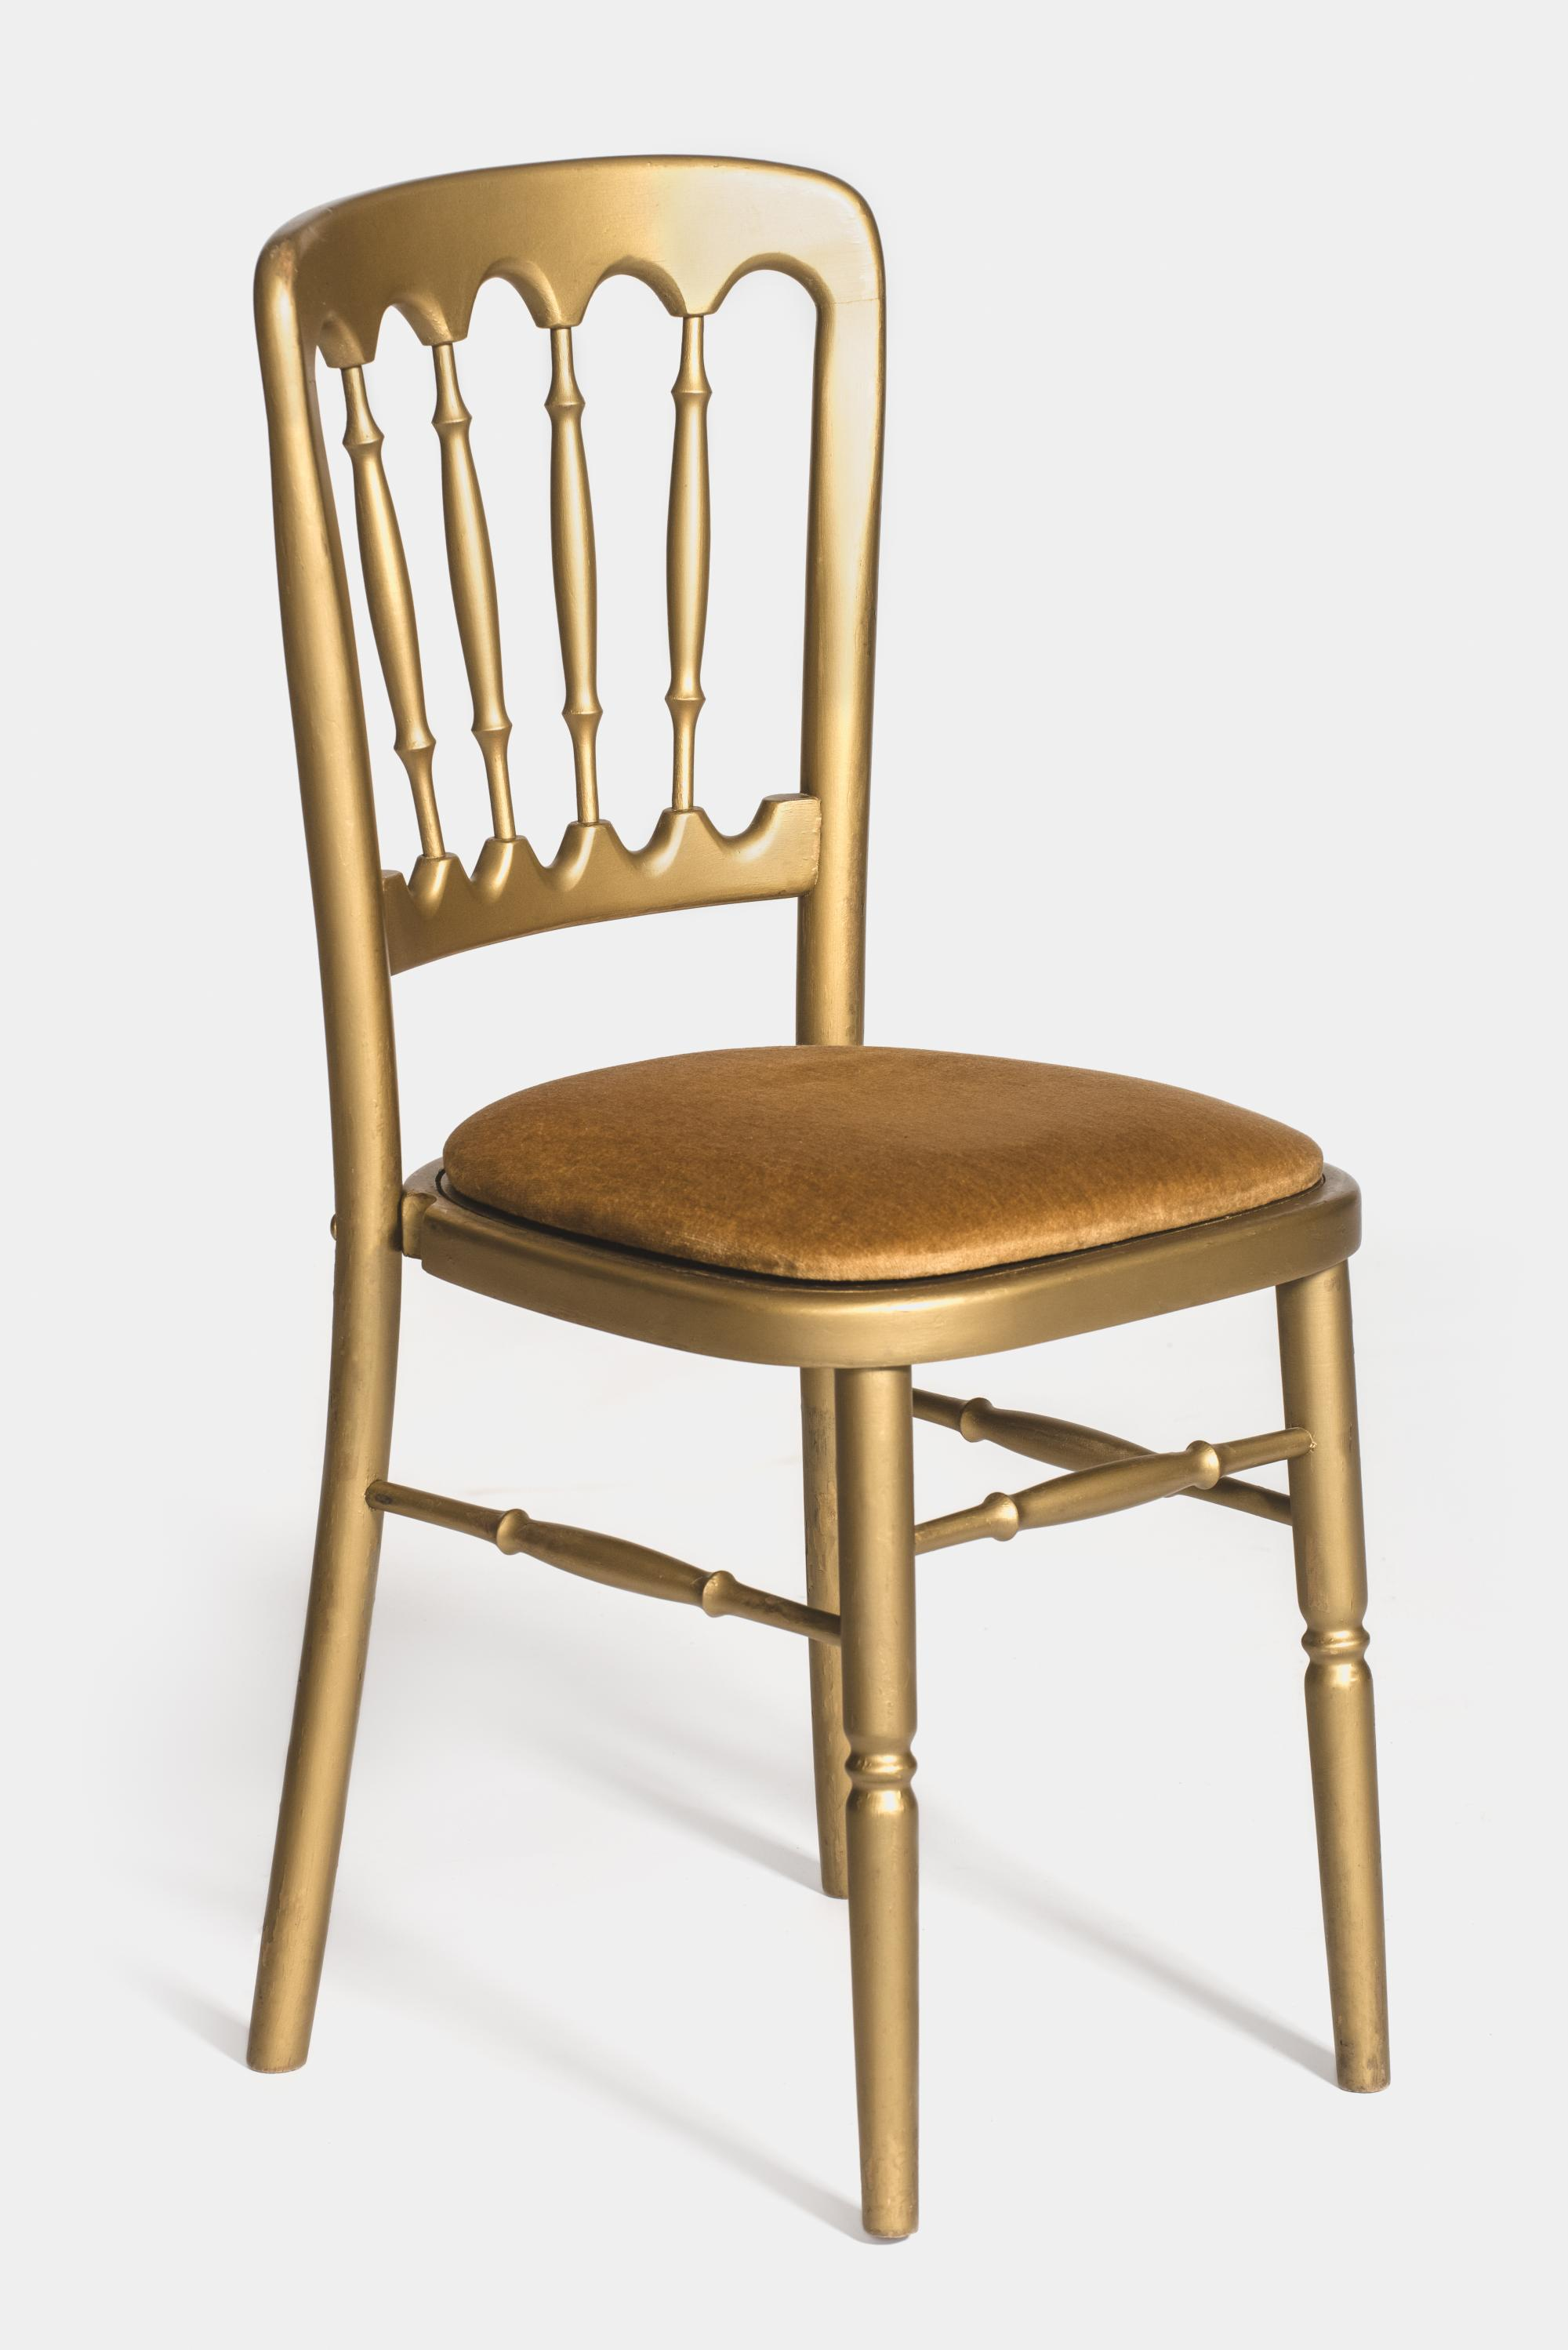 Camelot chair - Image 0